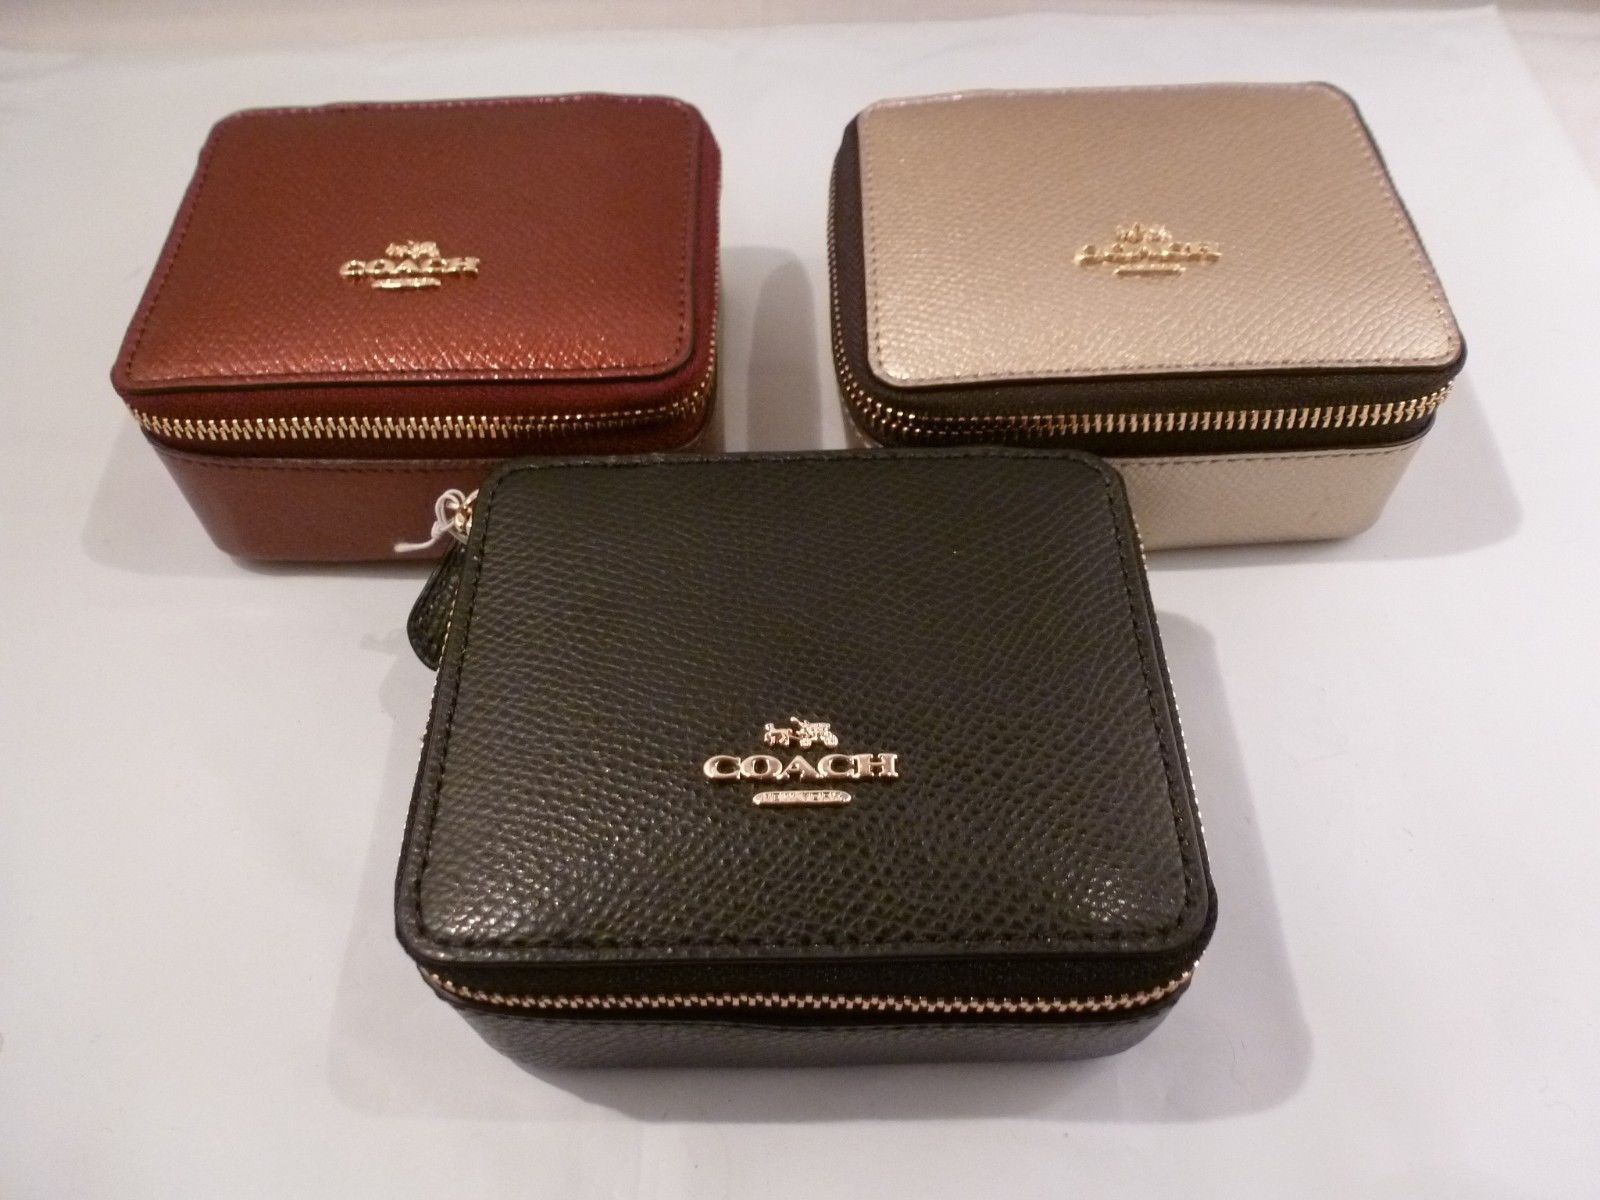 NWT COACH Jewelry CaseBox METALLIC CHERRY BLACK OR GOLD LEATHER